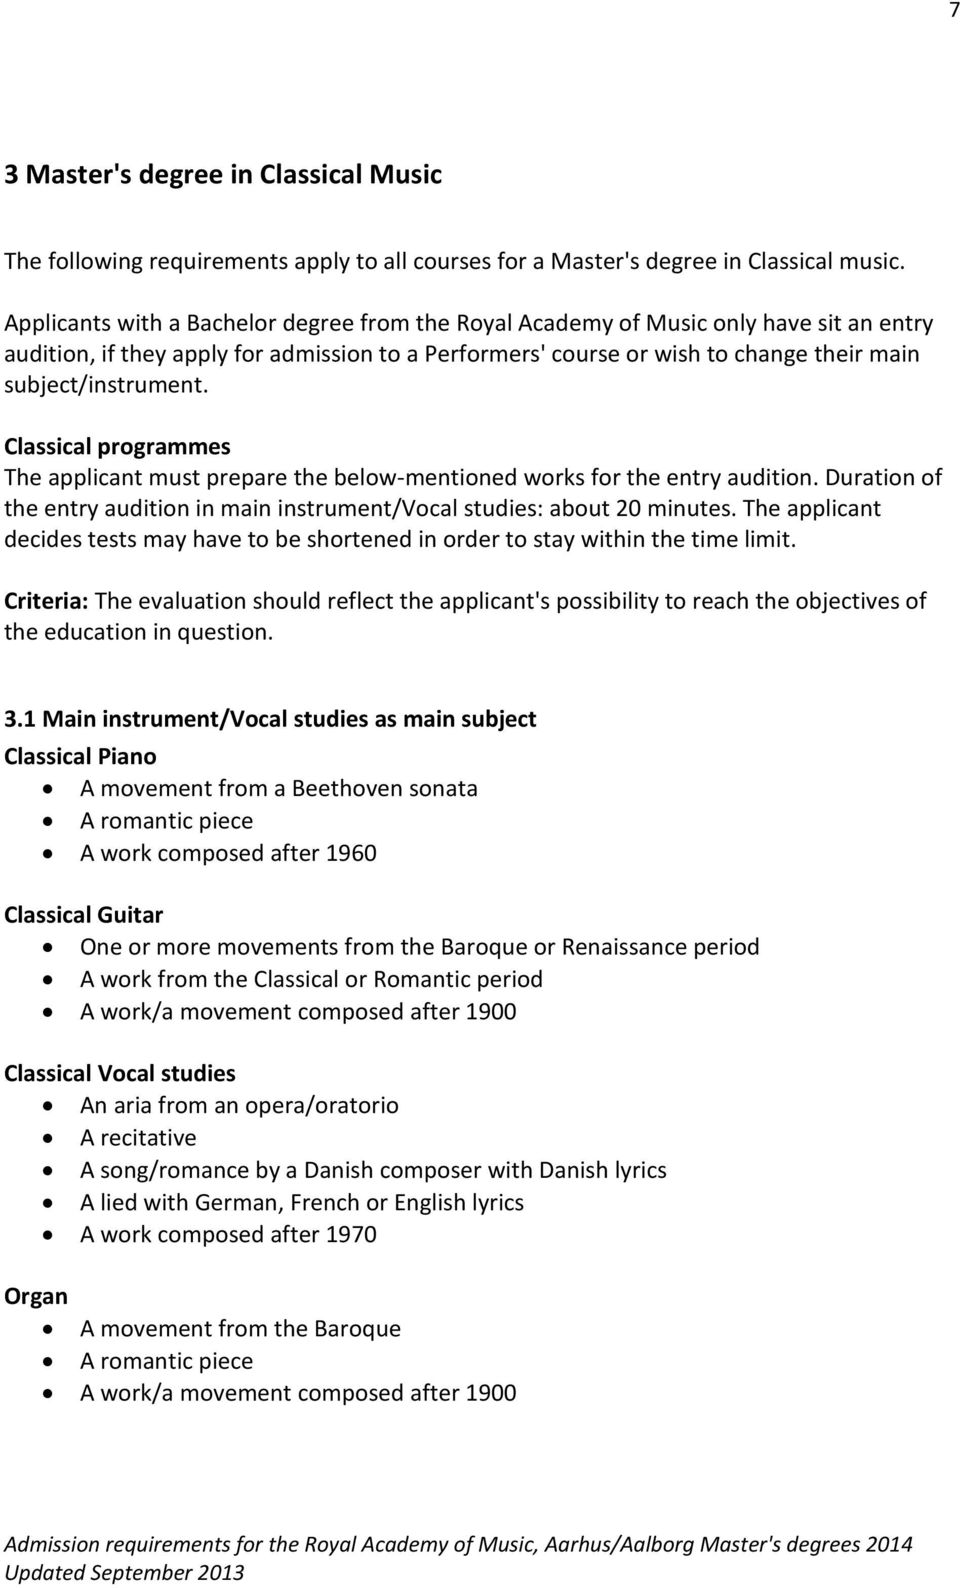 Classical programmes The applicant must prepare the below-mentioned works for the entry audition. Duration of the entry audition in main instrument/vocal studies: about 20 minutes.